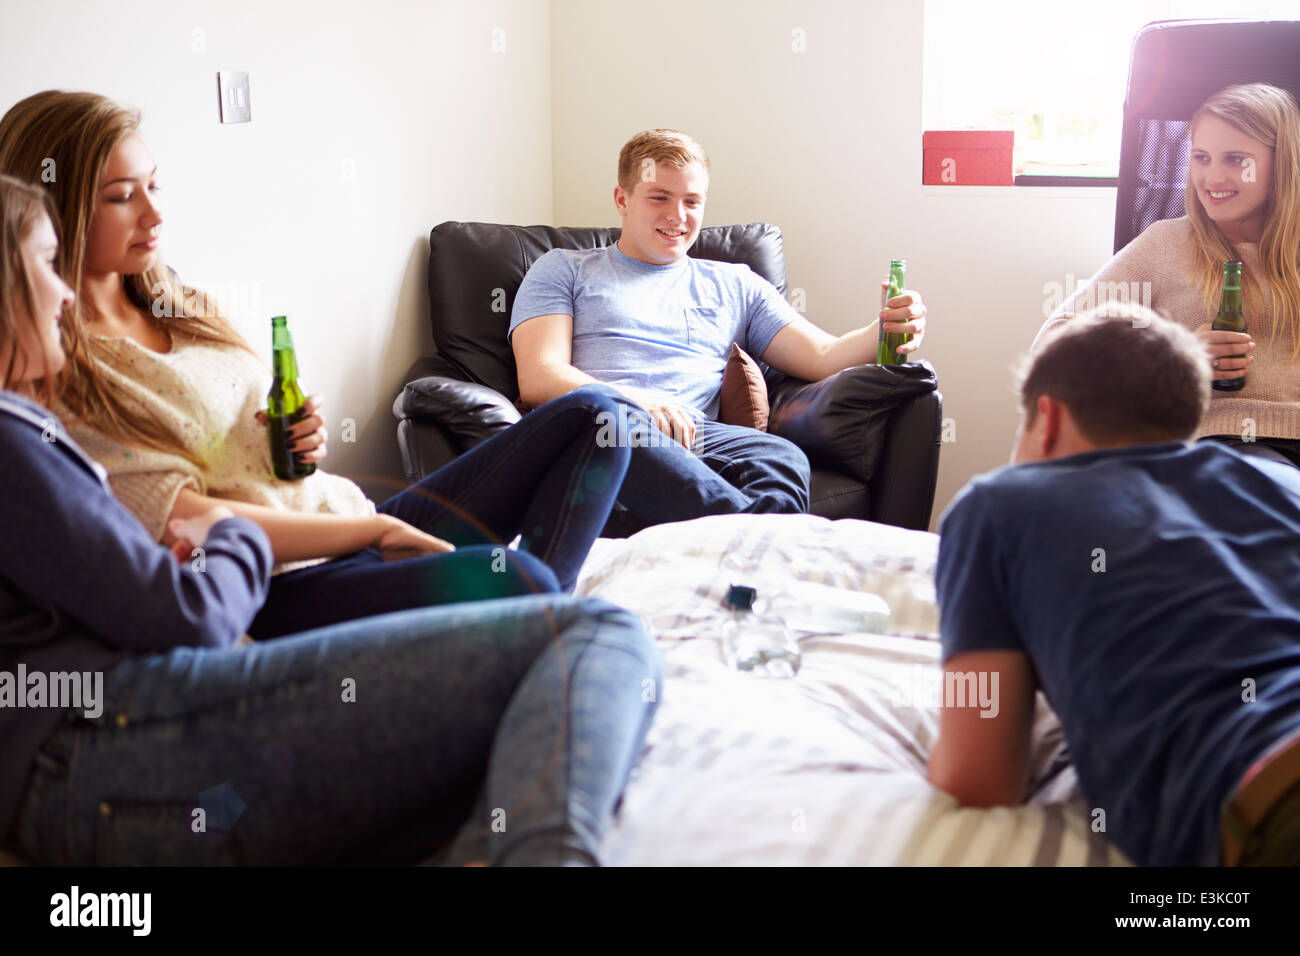 Group Of Teenagers Drinking Alcohol In Bedroom - Stock Image